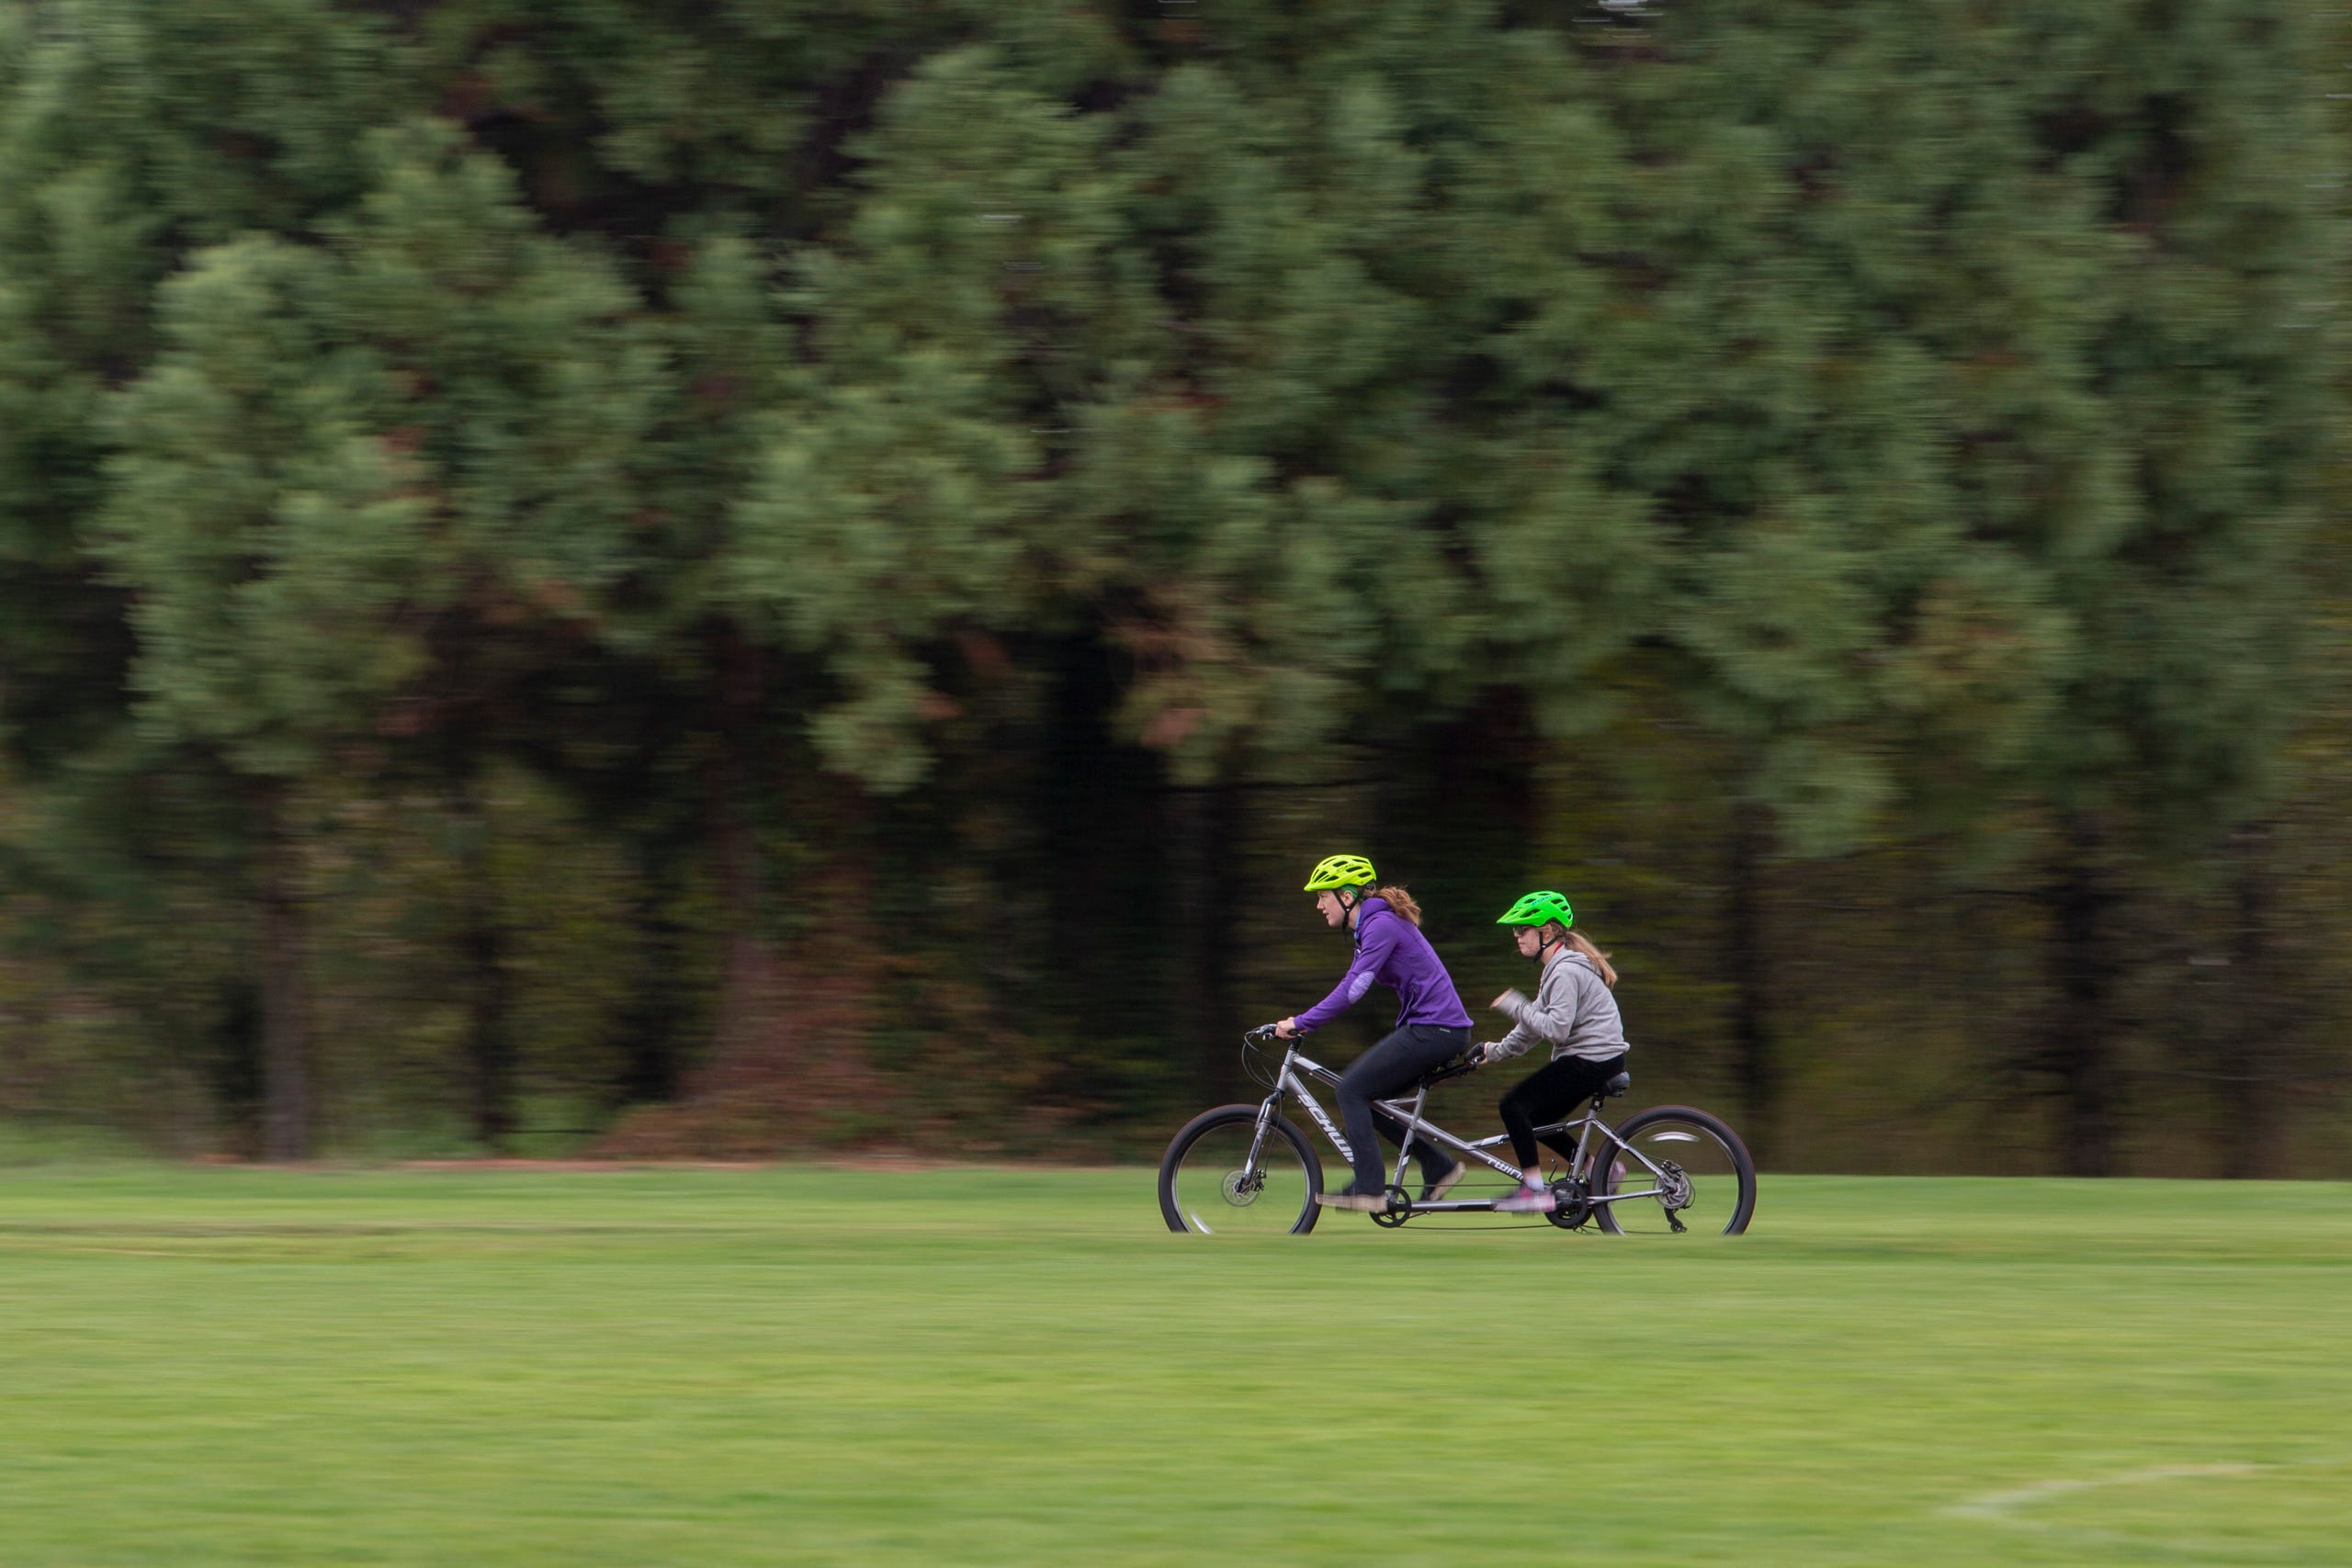 "Tandem biking instructor JoJo Smyth and eighth-grader Adara Hale cycle together at the Oregon School for the Deaf in Salem, Oct. 4, 2019. NWABA, the Northwest Association for Blind Athletes, hosted a ""Paralympic experience"" for students with visual impairments in the state. After the Oregon School for the Blind closed in 2009, many visually impaired students and their families lost access to state-funded resources, like sports programs. The BVIS (Blind Visually Impaired Student) Fund gives programs like NWABA funds to enhance the lives of low vision/blind children across the state."